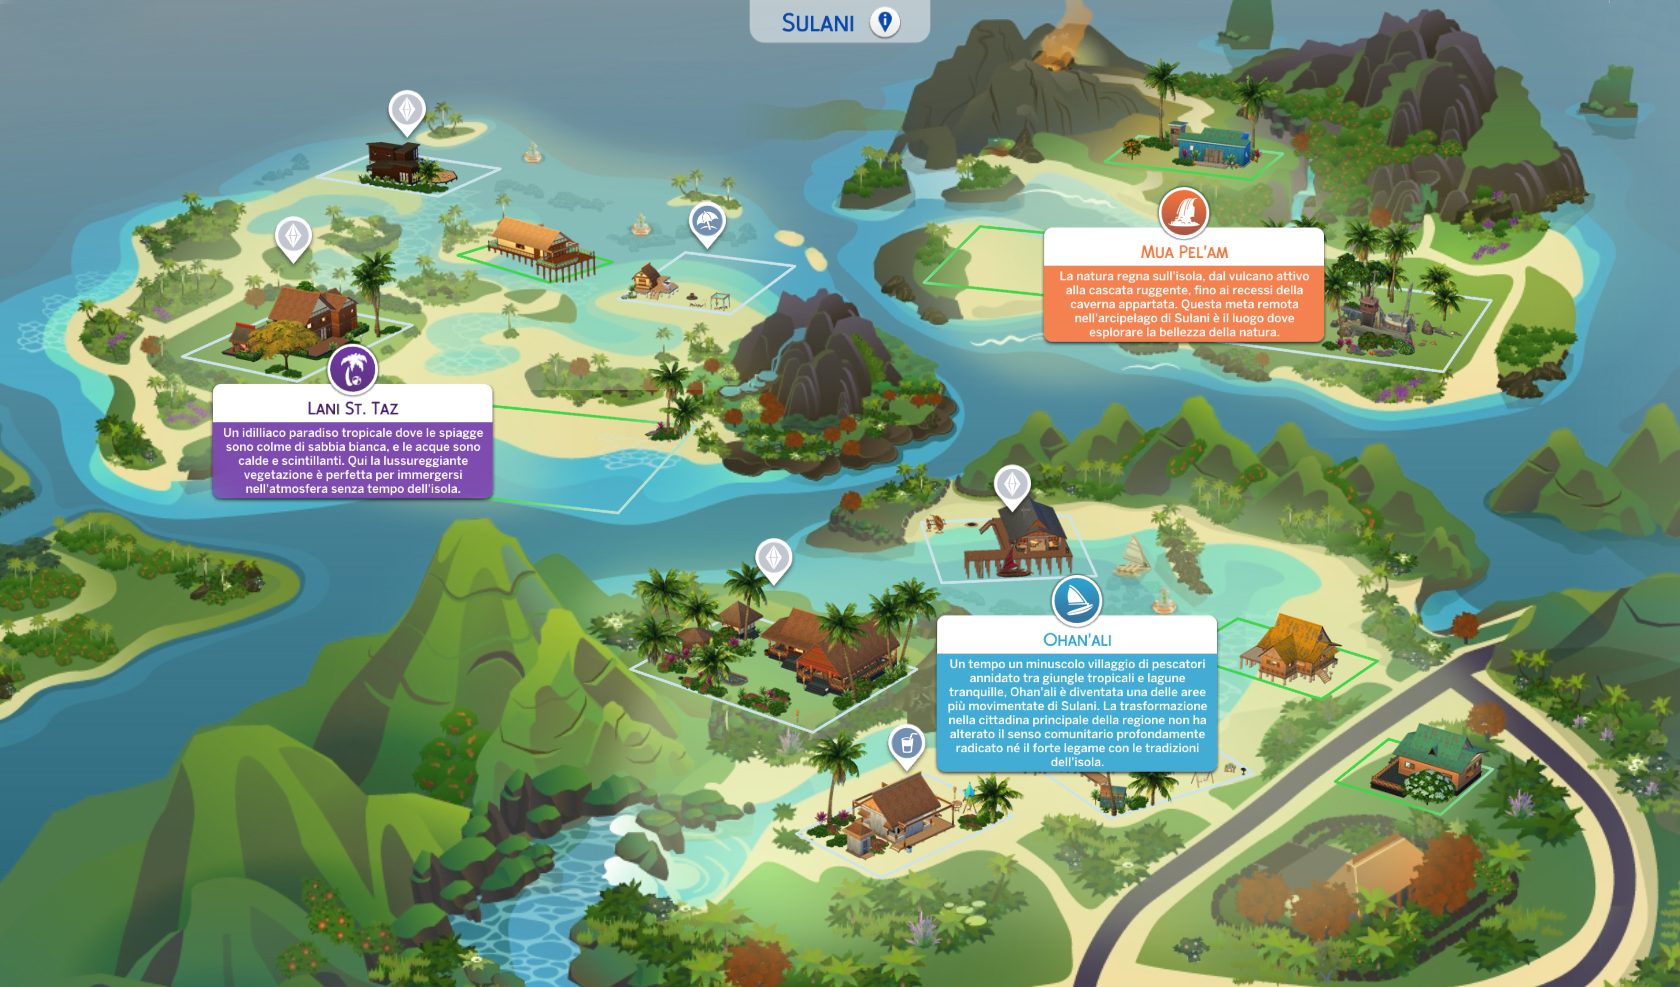 the sims 4 Vita Sull'Isola review Sulani Map